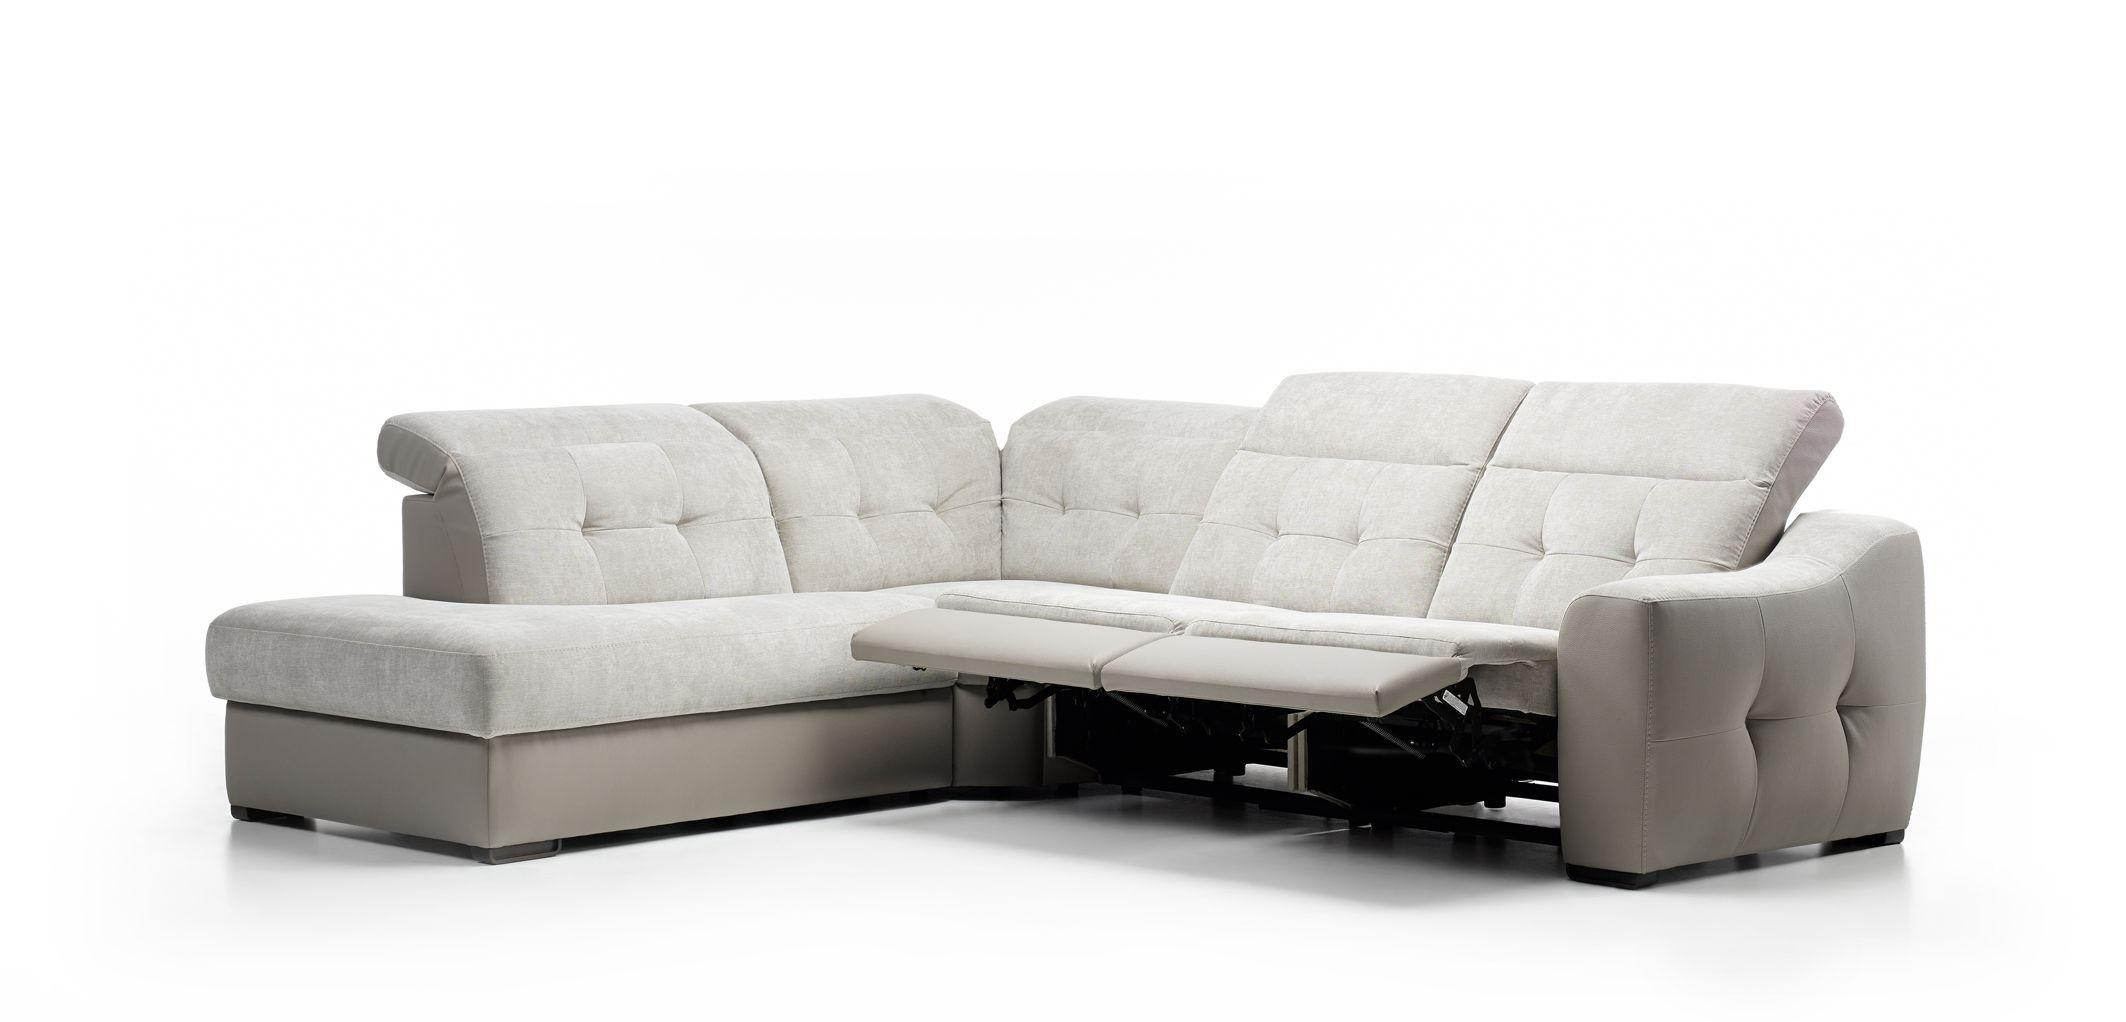 Modern Sectionals Sofas 40 With Modern Sectionals Sofas For Modern Sofas Sectionals (View 8 of 21)